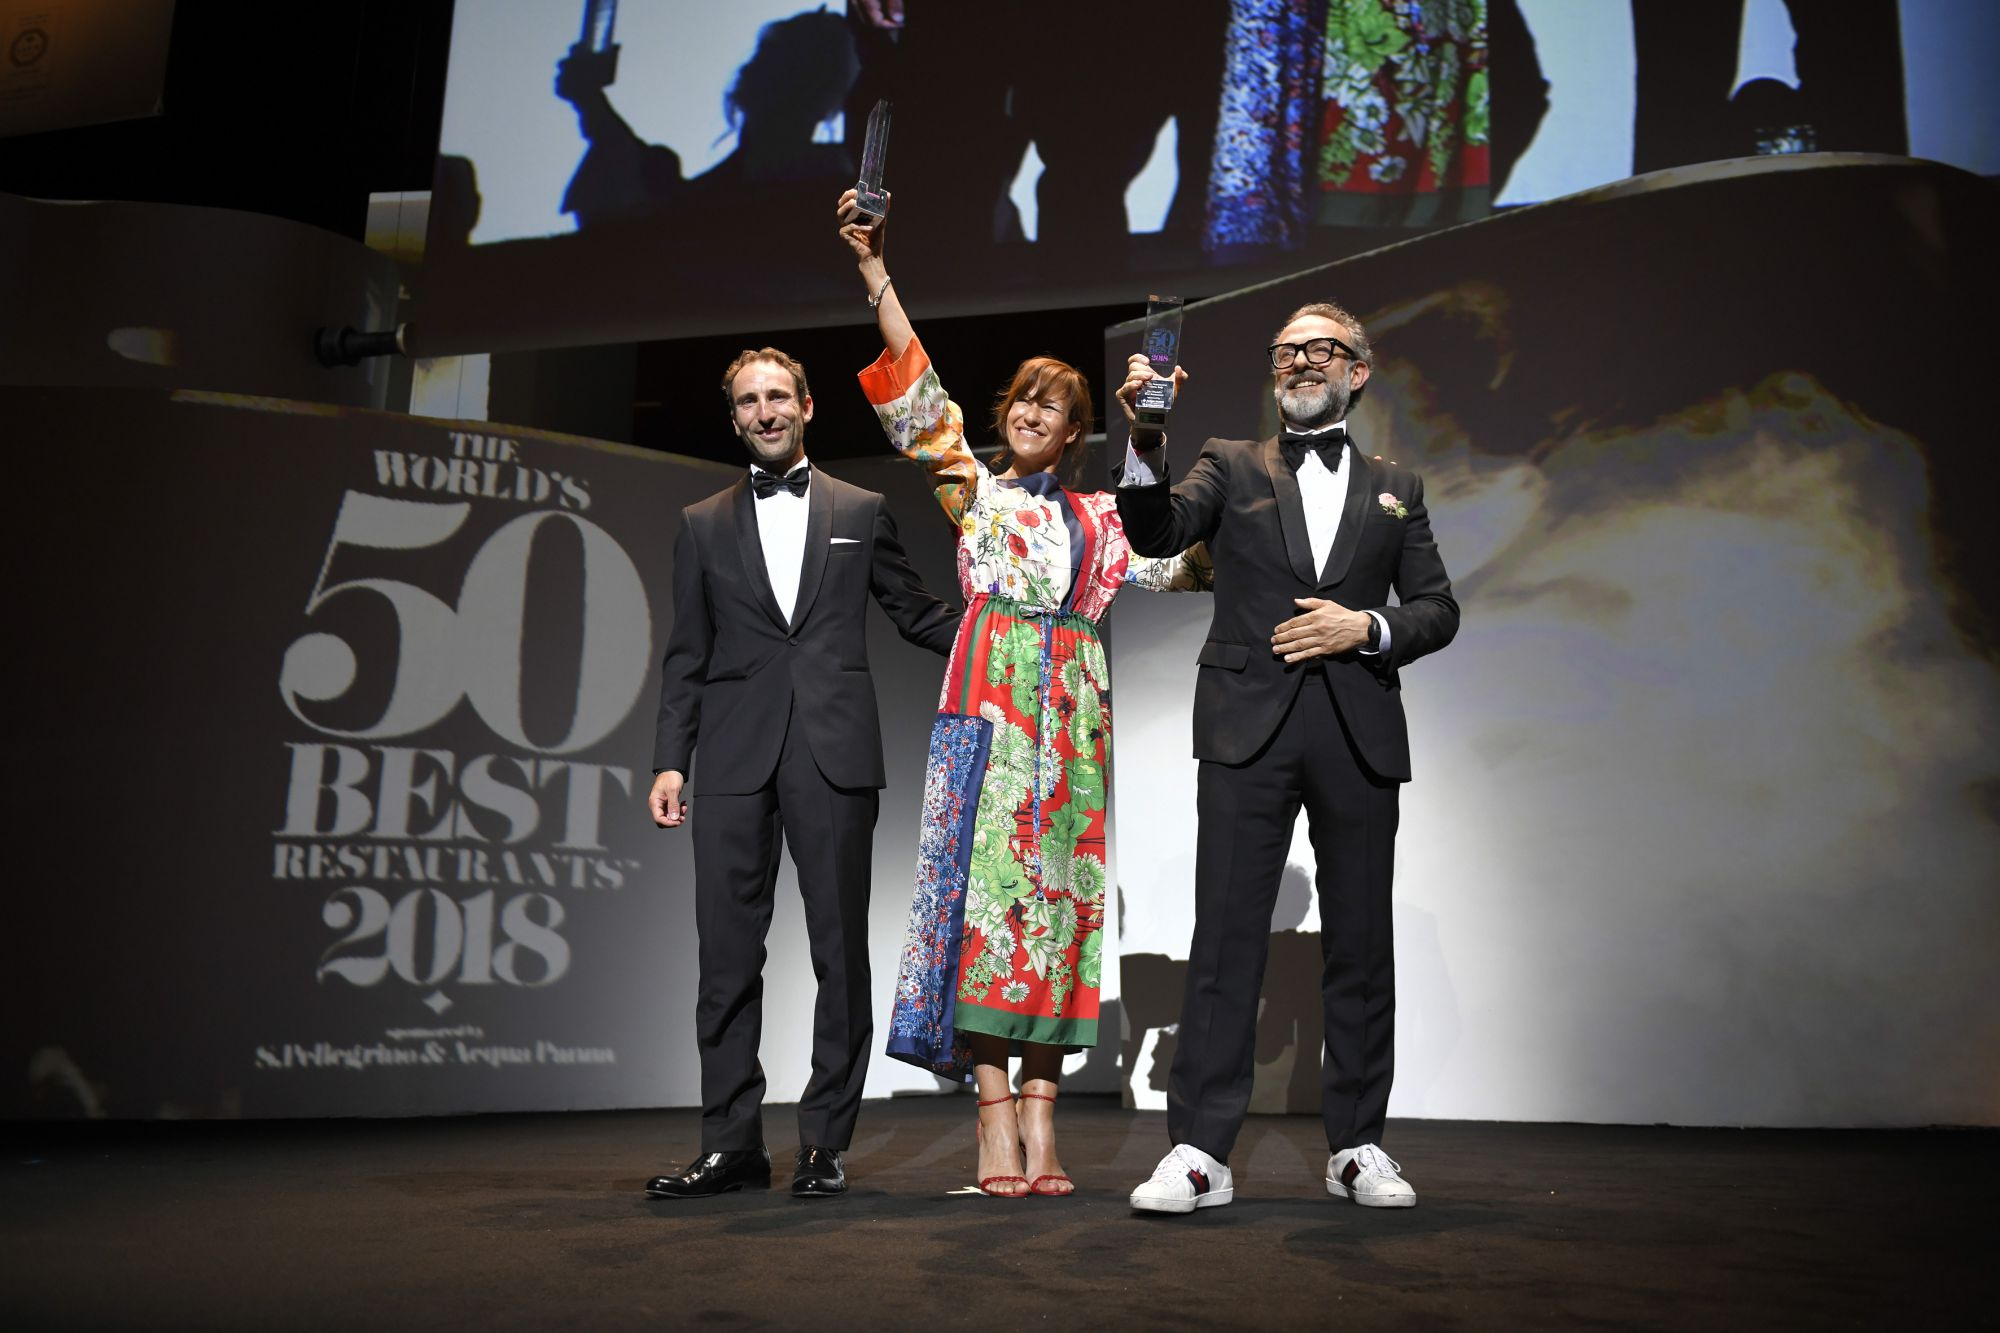 The World's 50 Best Restaurants Awards Comes To Singapore In 2019